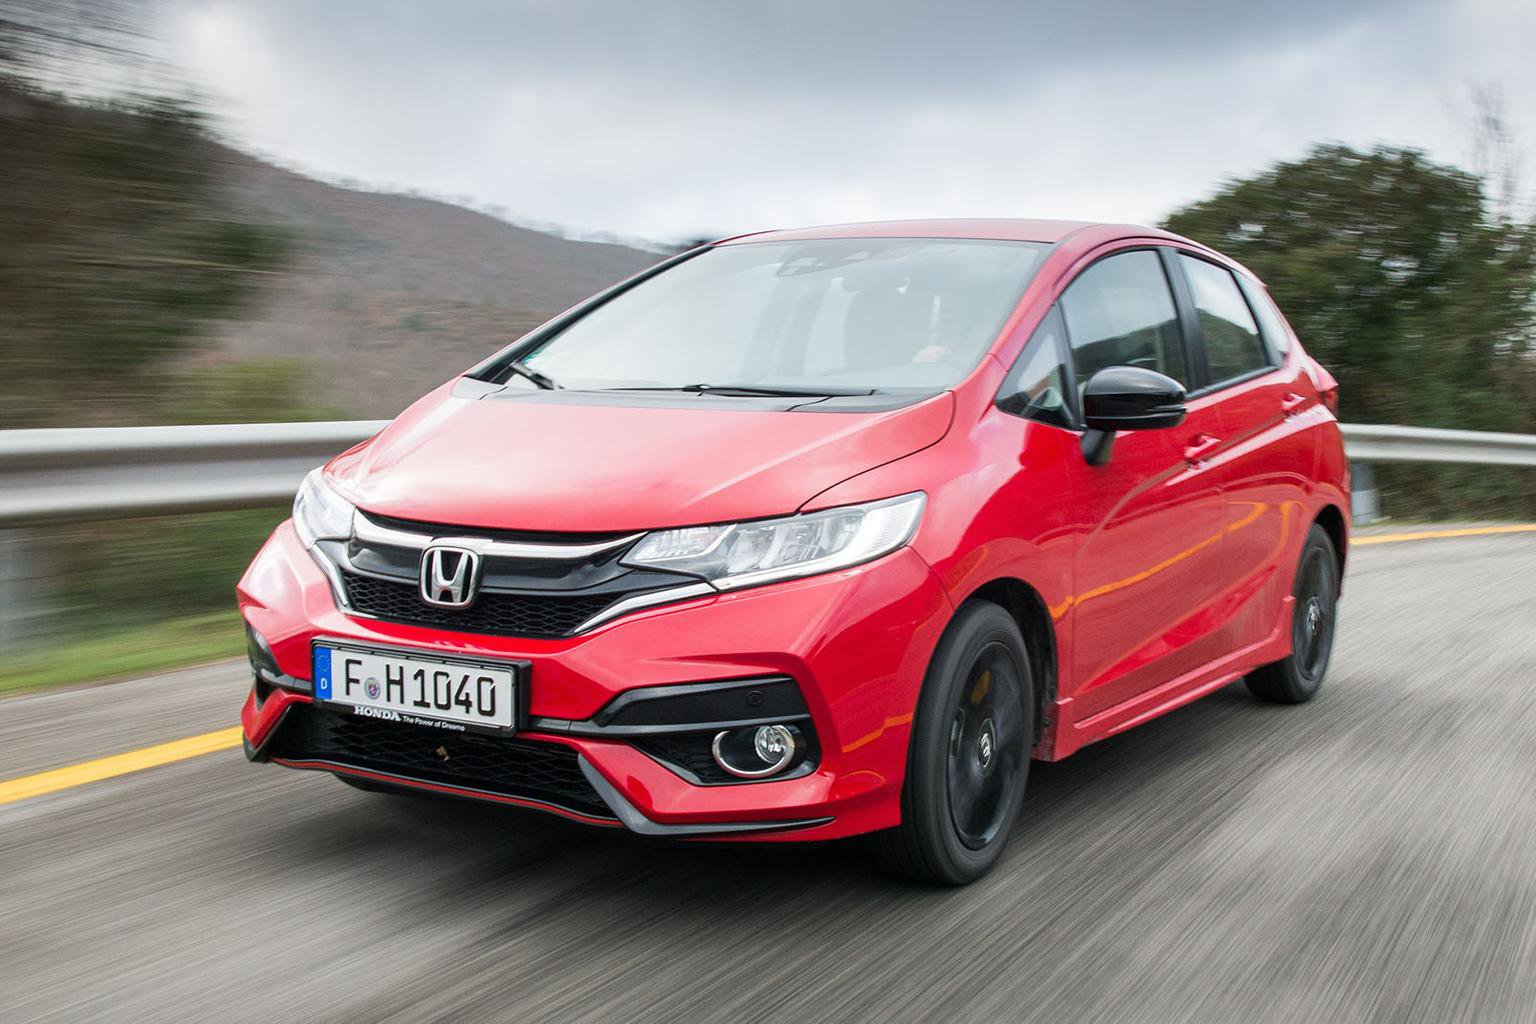 2018 Honda Jazz 1.5 i-VTEC review - price, specs and release date